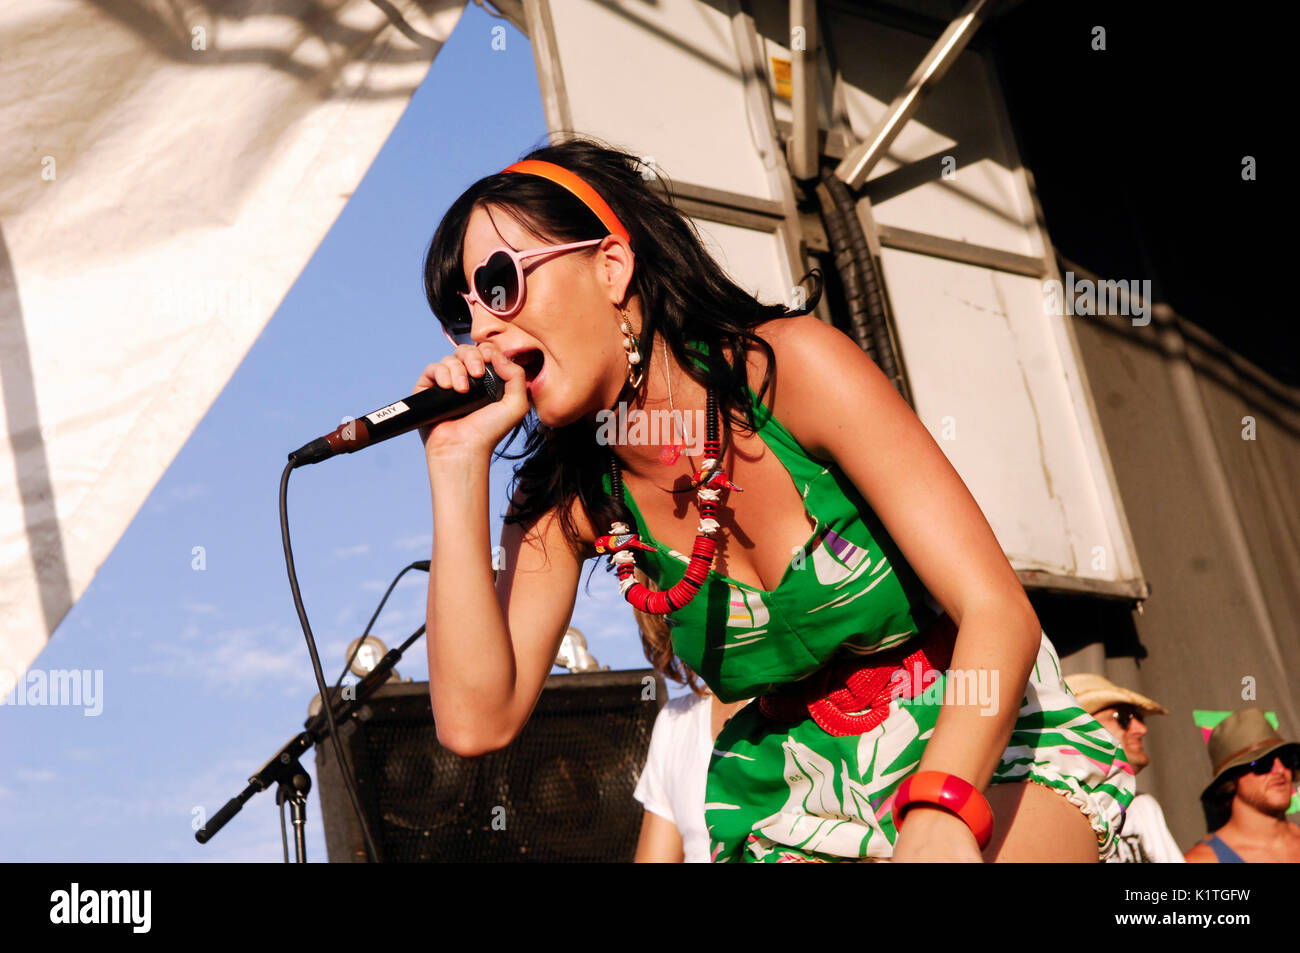 Katy Perry performing 2008 Vans Warped Tour Coors Amphitheater San Diego. - Stock Image